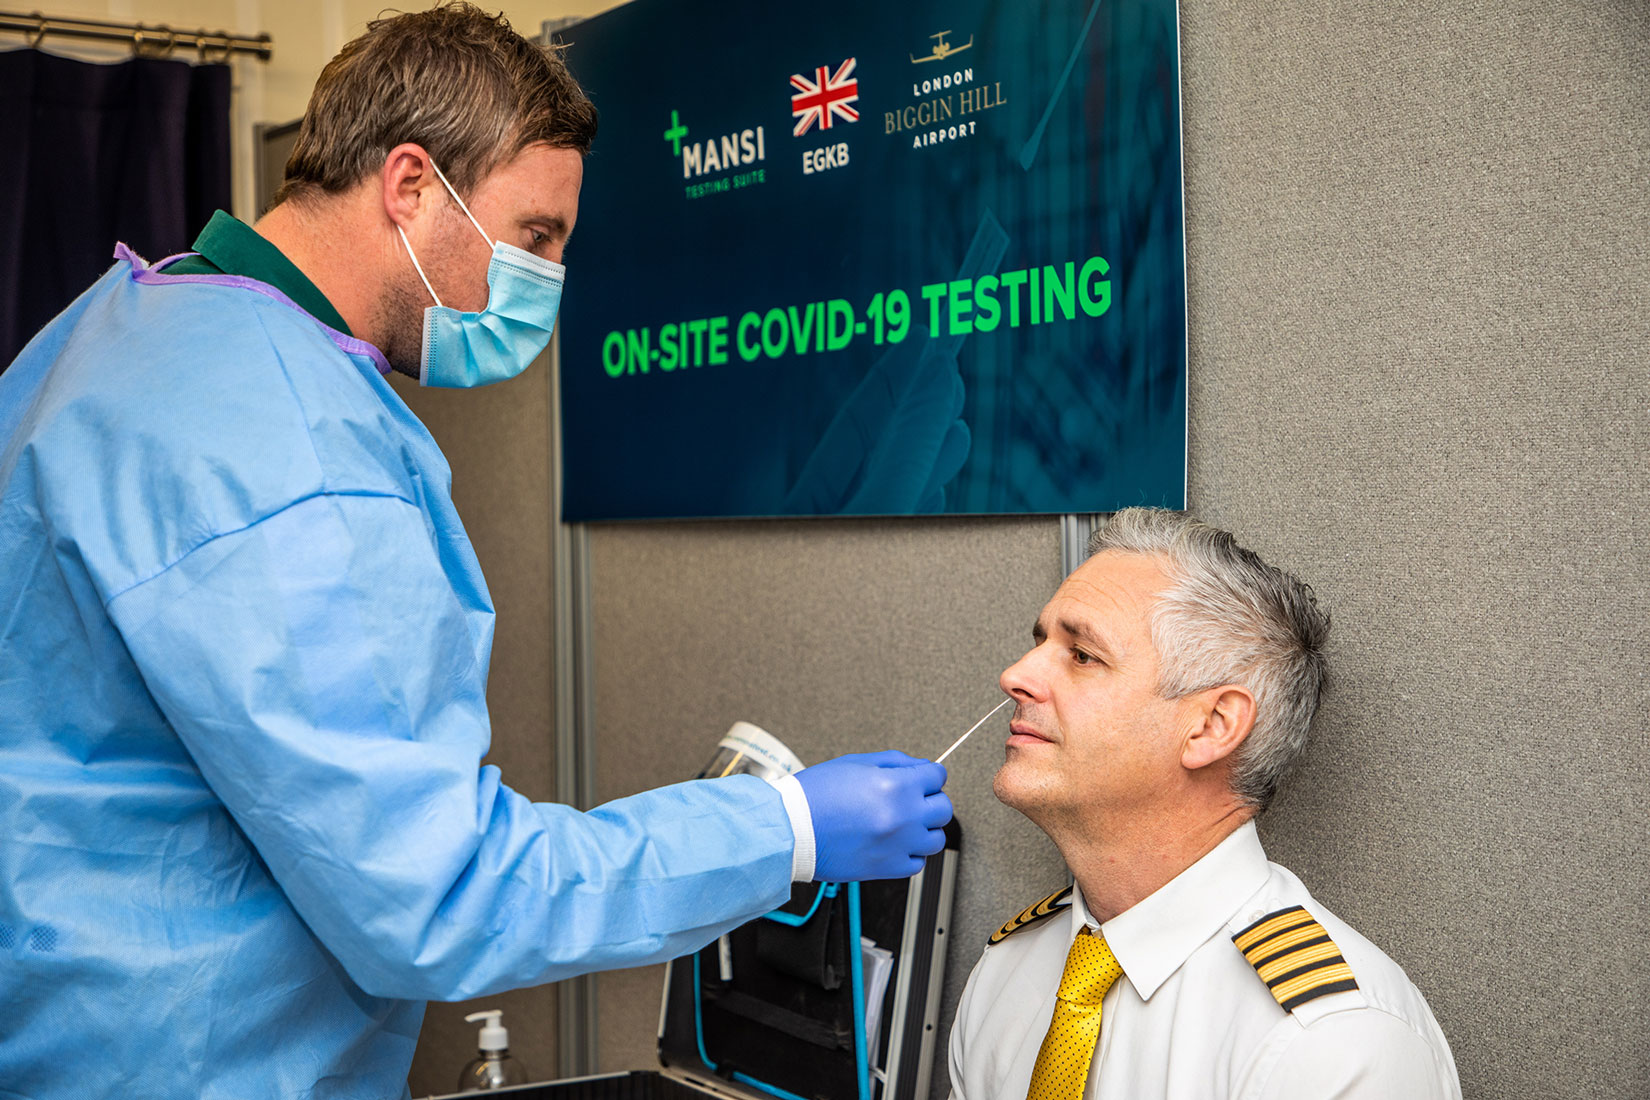 Same day PCR Covid-19 test results on offer at London Biggin Hill Airport -  London Biggin Hill Airport